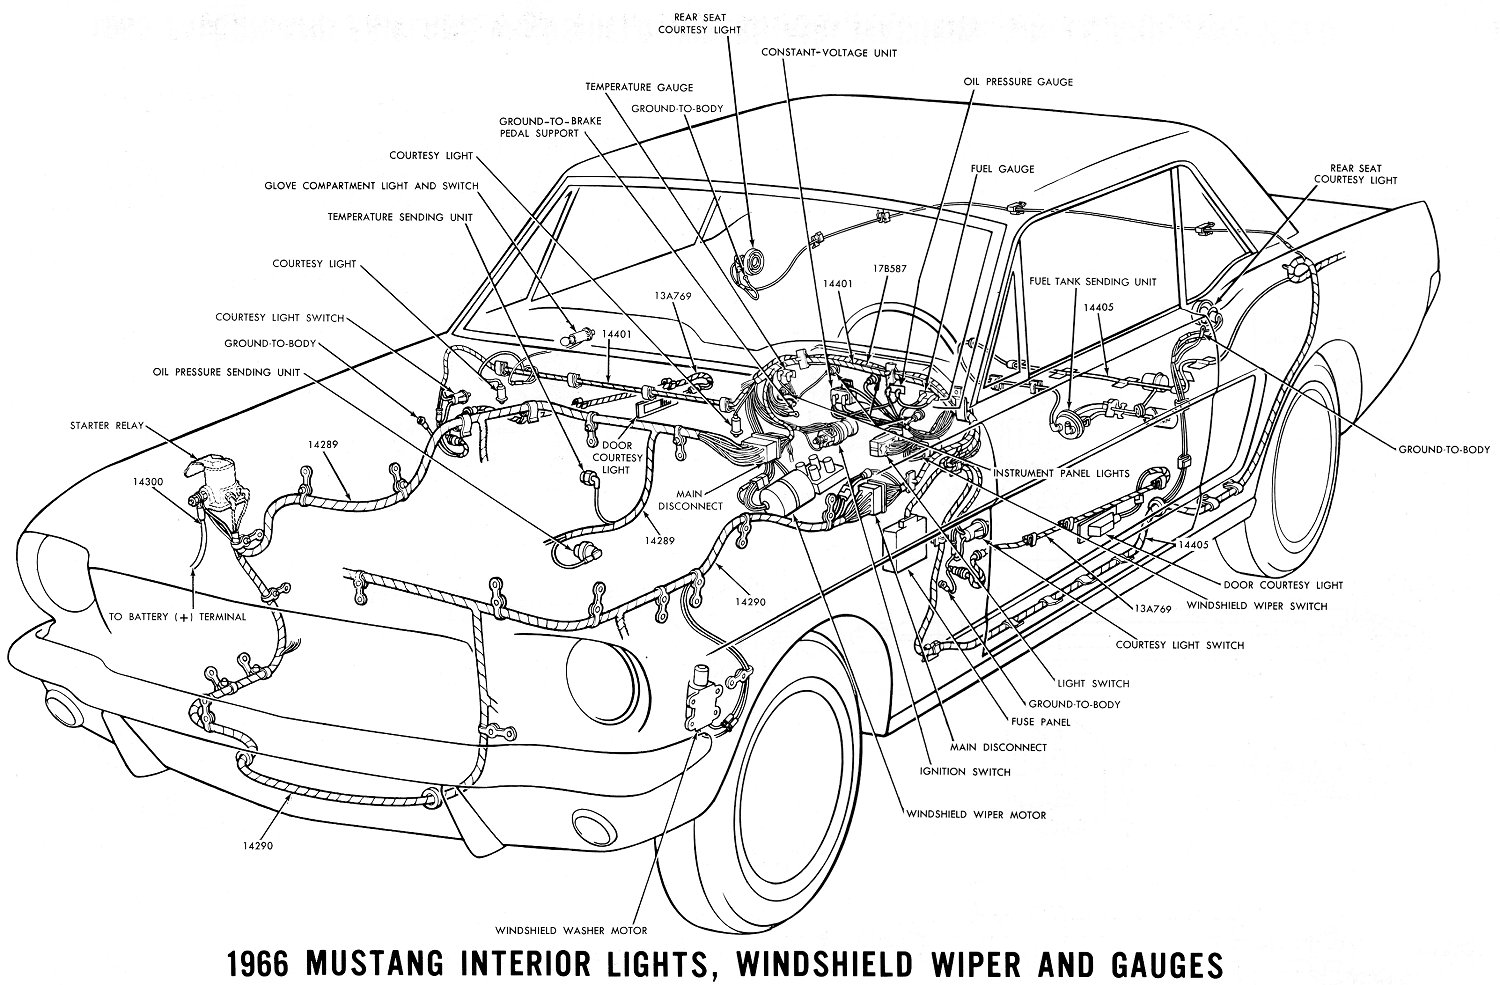 1969 mustang radio wiring diagram teco single phase induction motor vintage diagrams 66 interior lighting detail